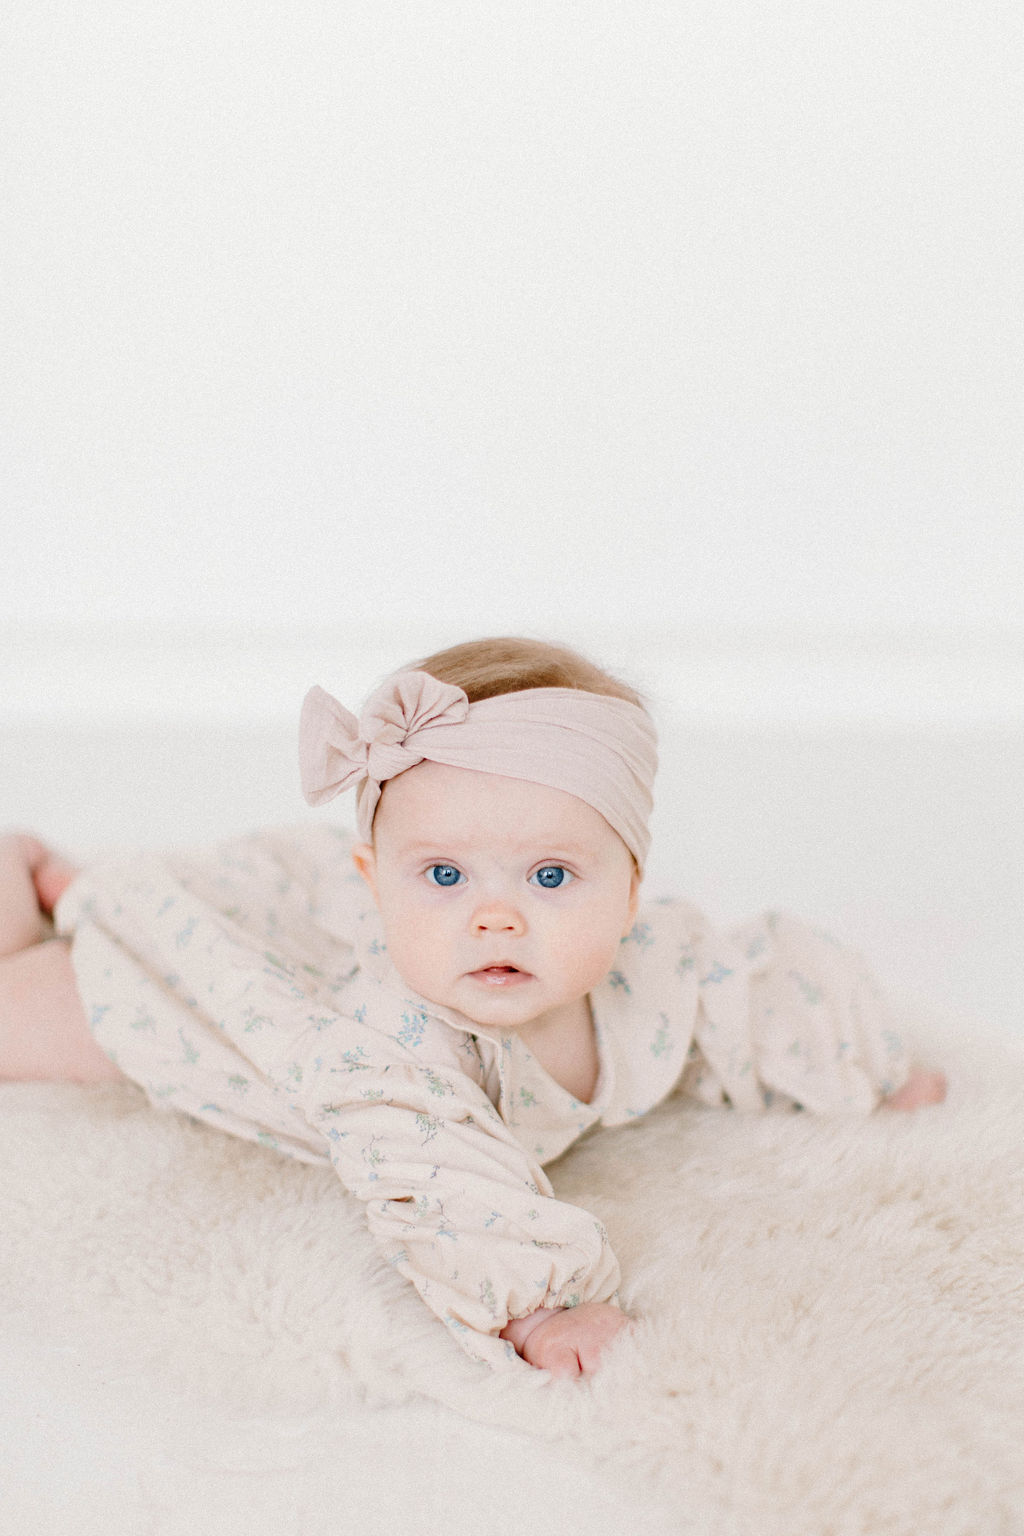 Our Baby Girl, Ellie, is 6 Months Old 3